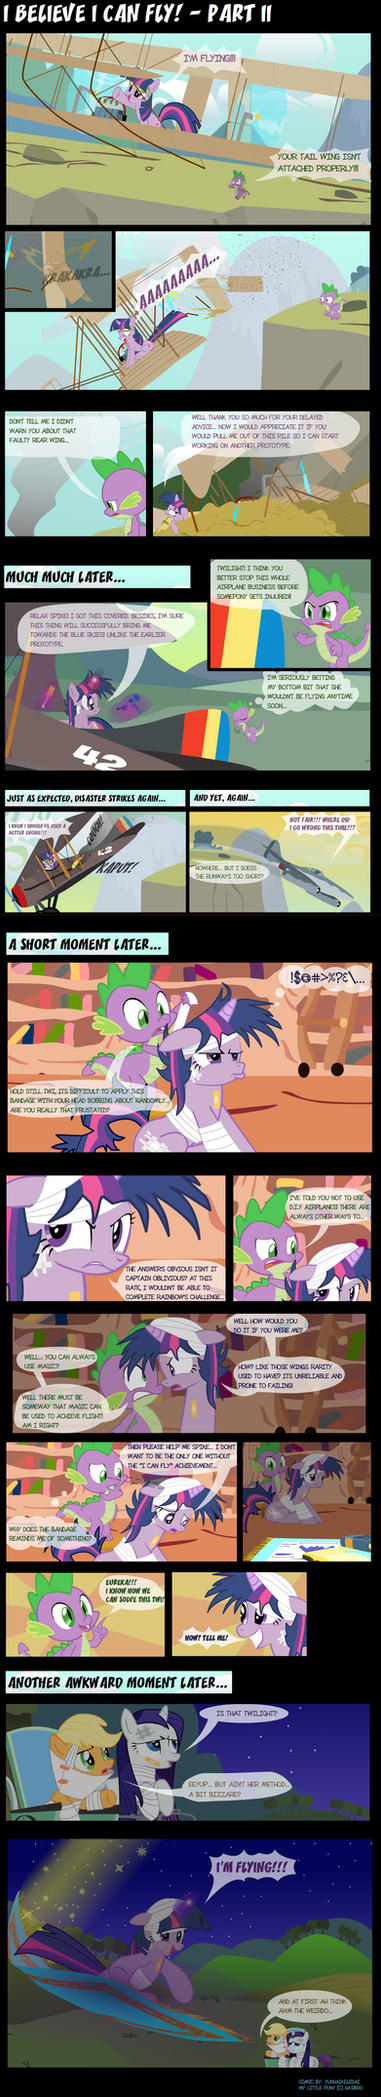 MLP: I Believe I Can Fly Part 2 by Yudhaikeledai